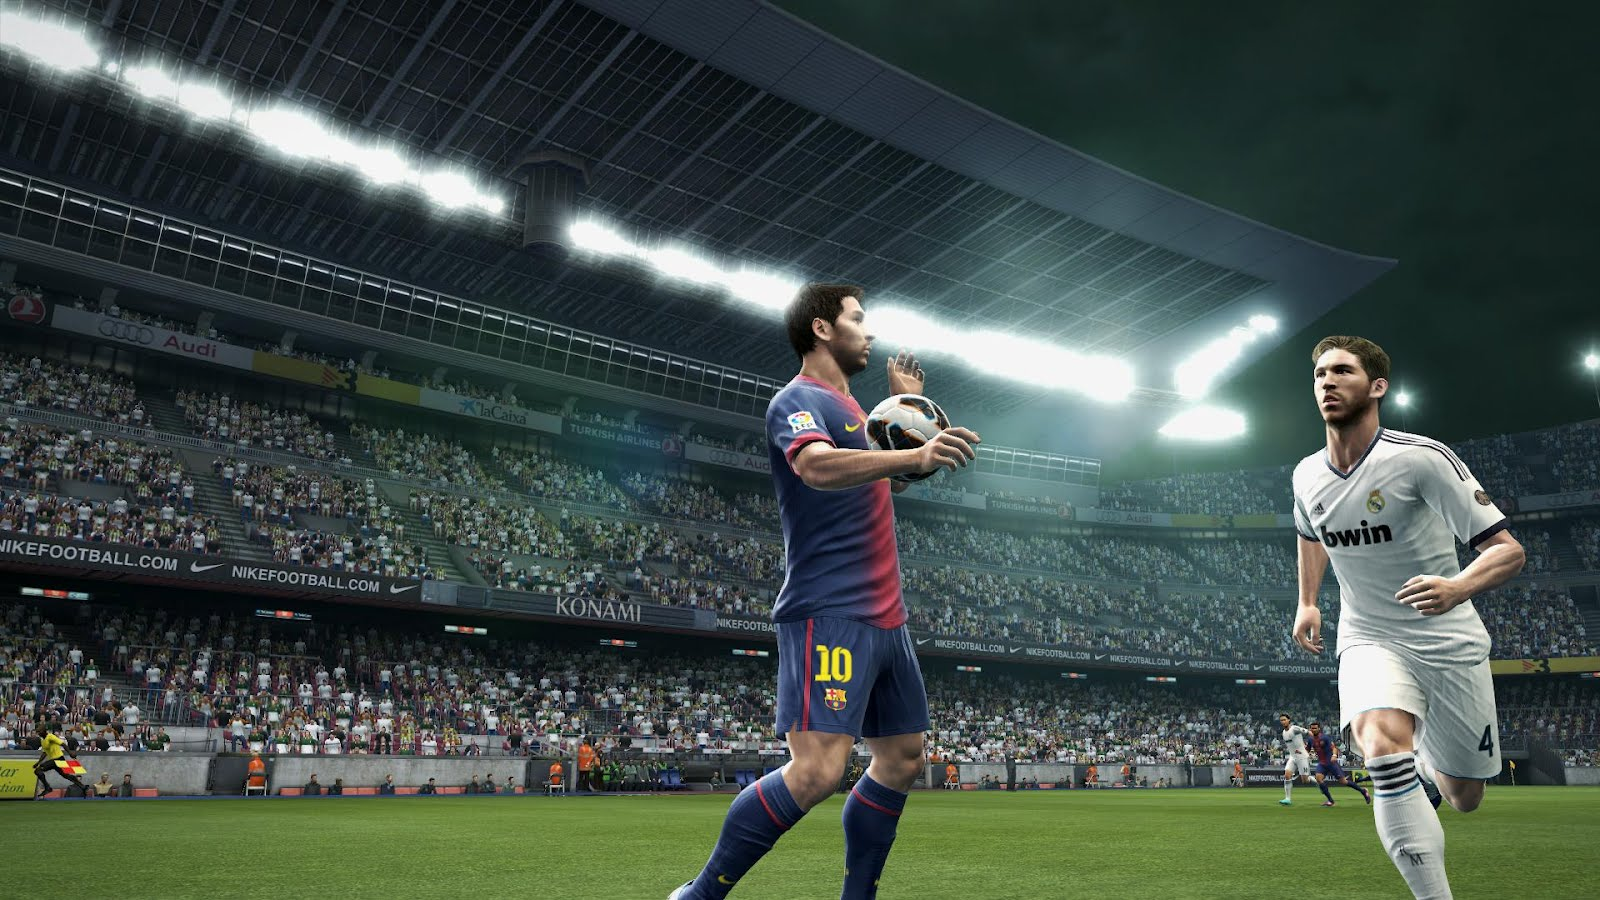 19 Jan 2015 PES 2013 Download | PES 2014 Download | PES 2015 Download